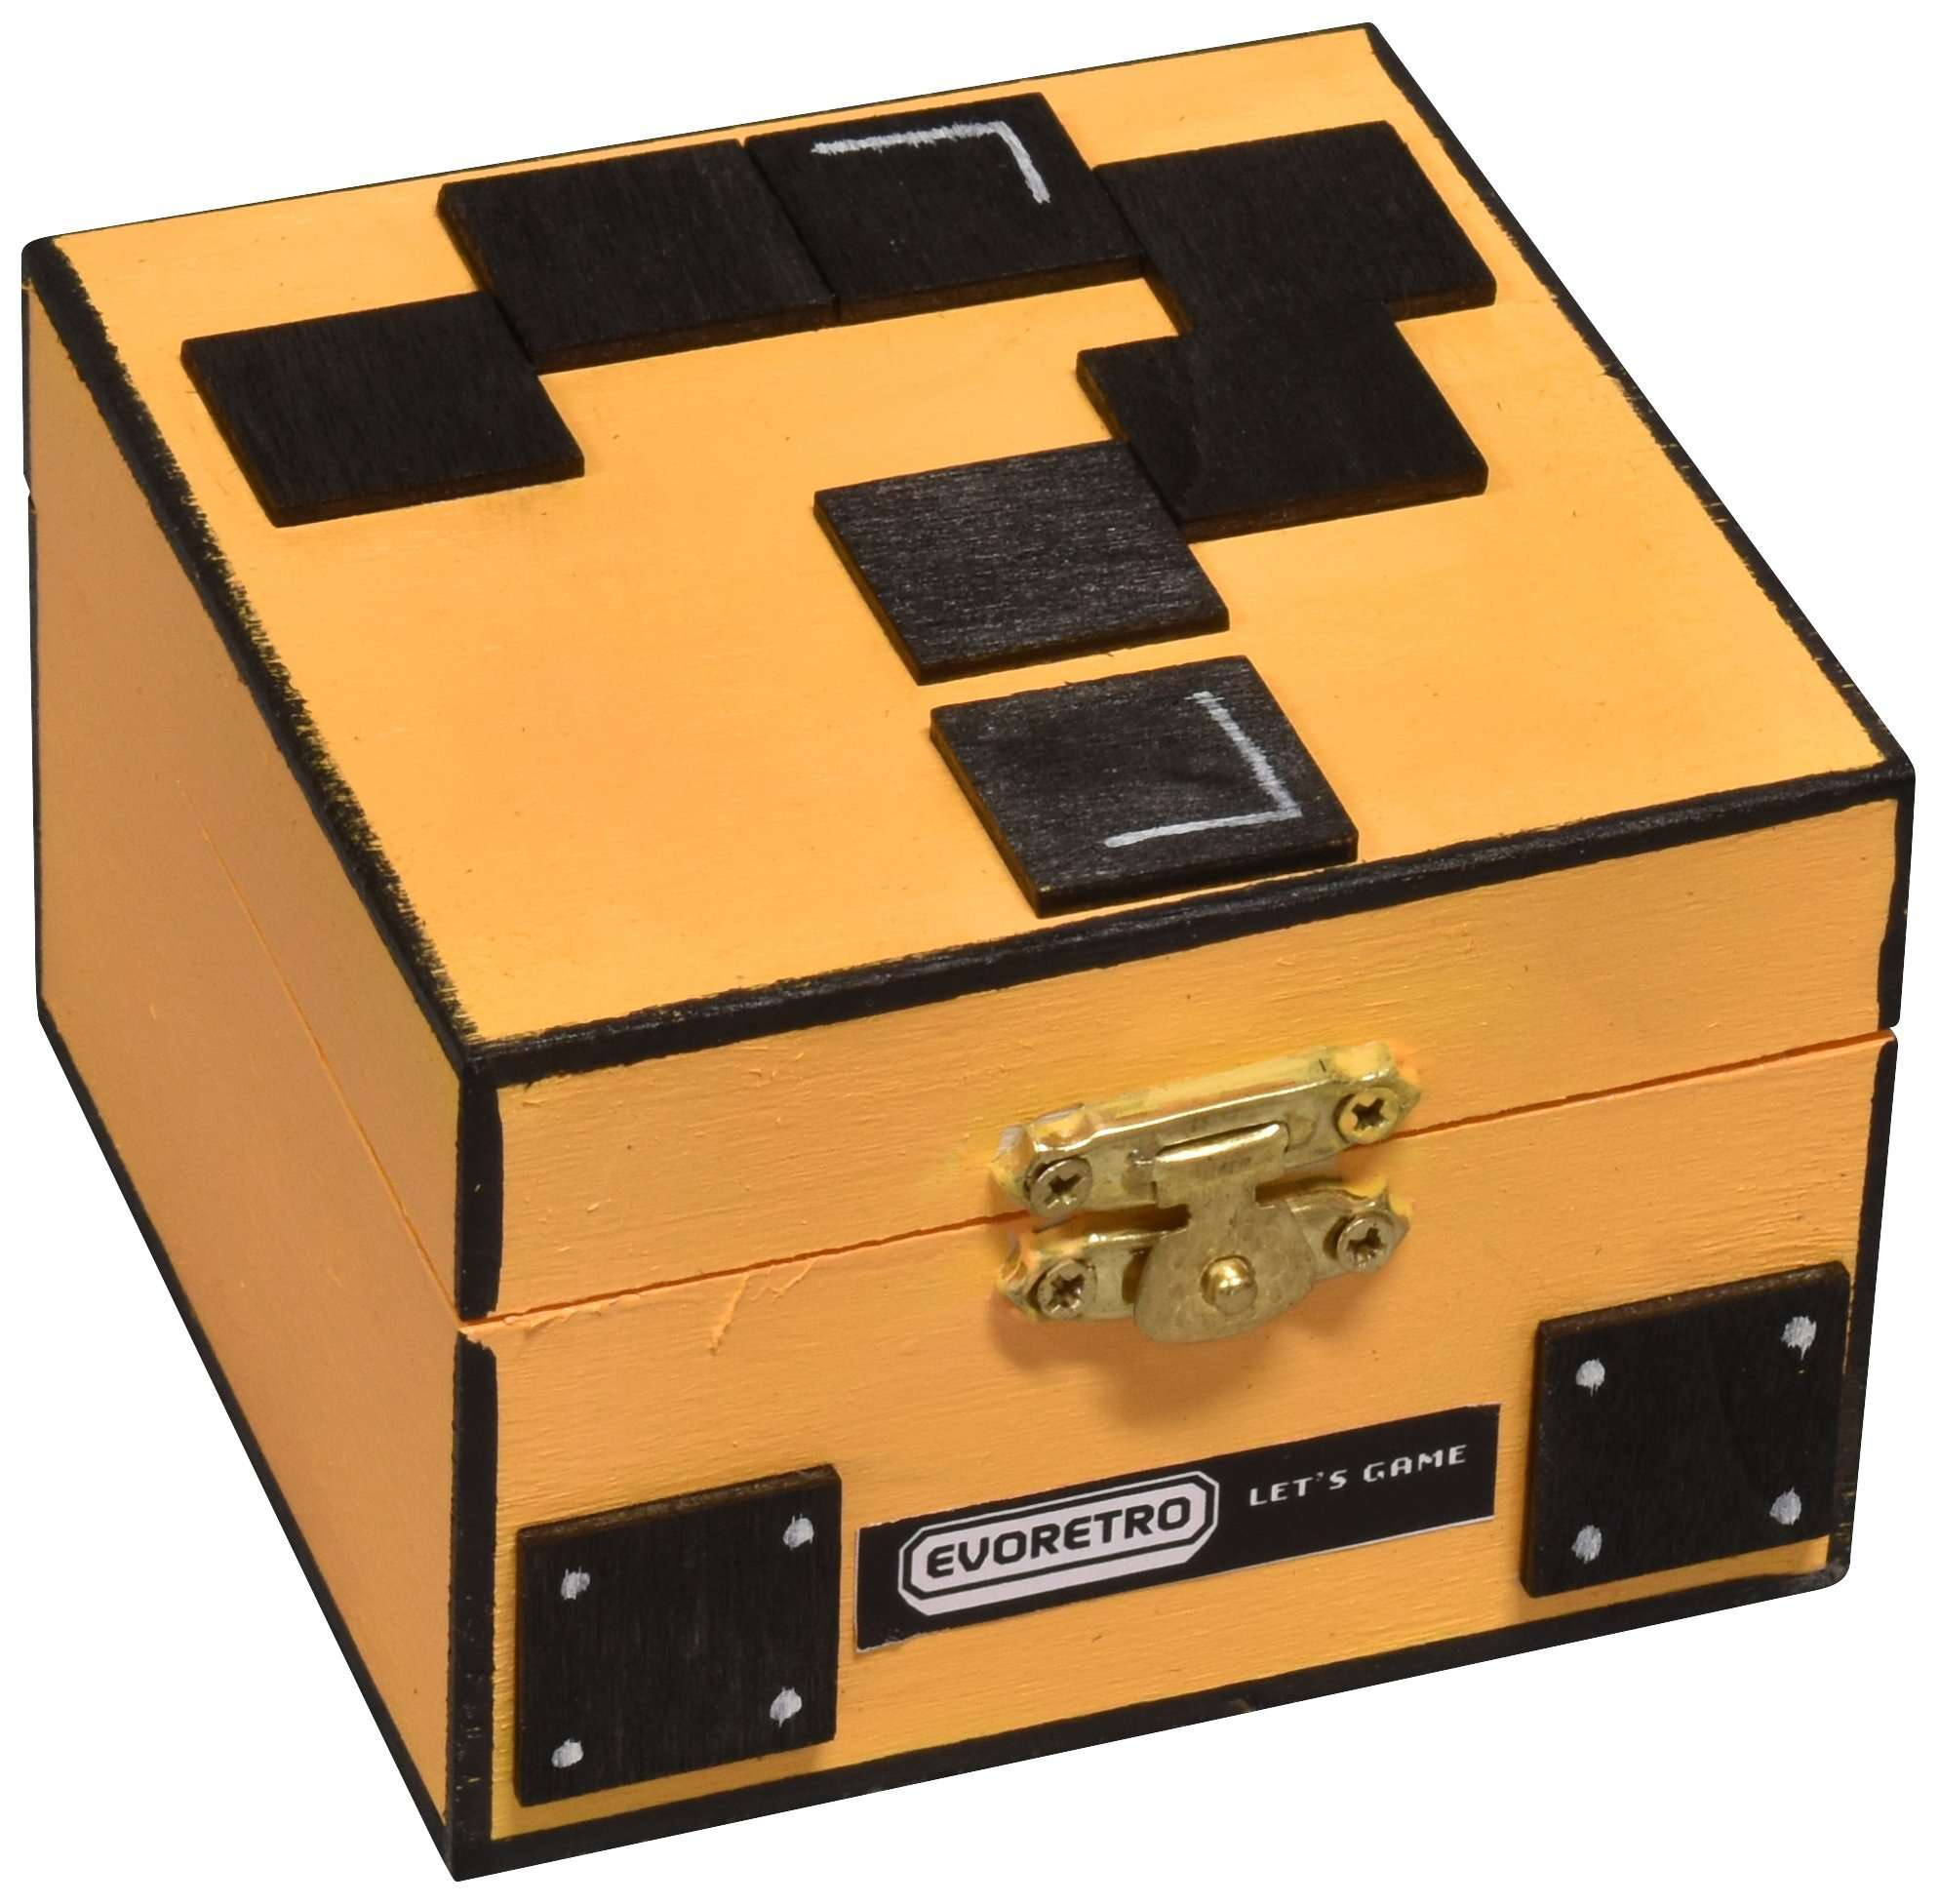 DECORATIVE YELLOW MYSTERY BOX - EvoRetro Lets Game